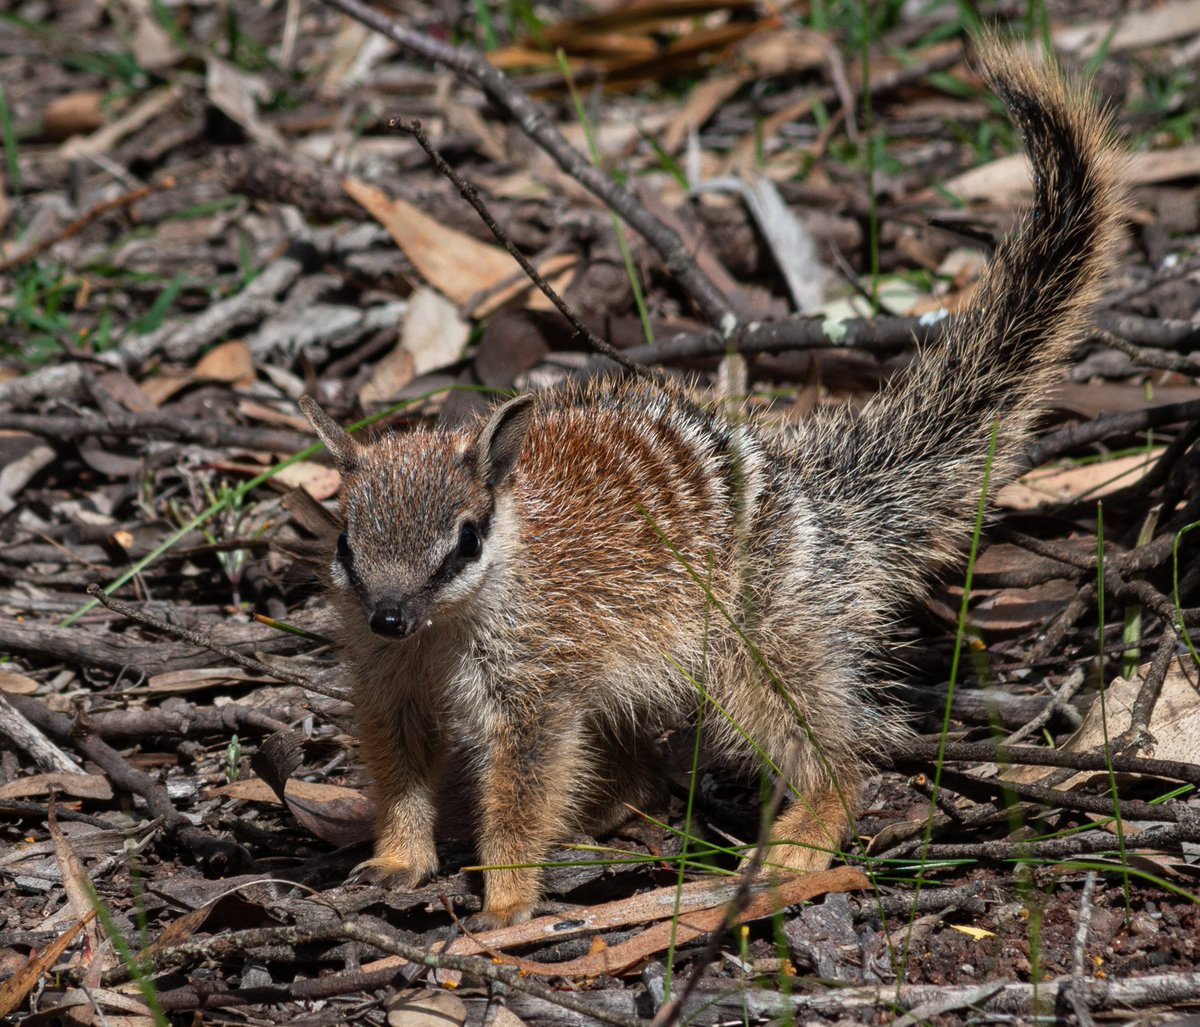 Watching young #numbats playing is one of the most wonderful #wildlife experiences. They are the most enchanting little animals. #mammalwatching #wildoz https://t.co/j3HO1pAbag